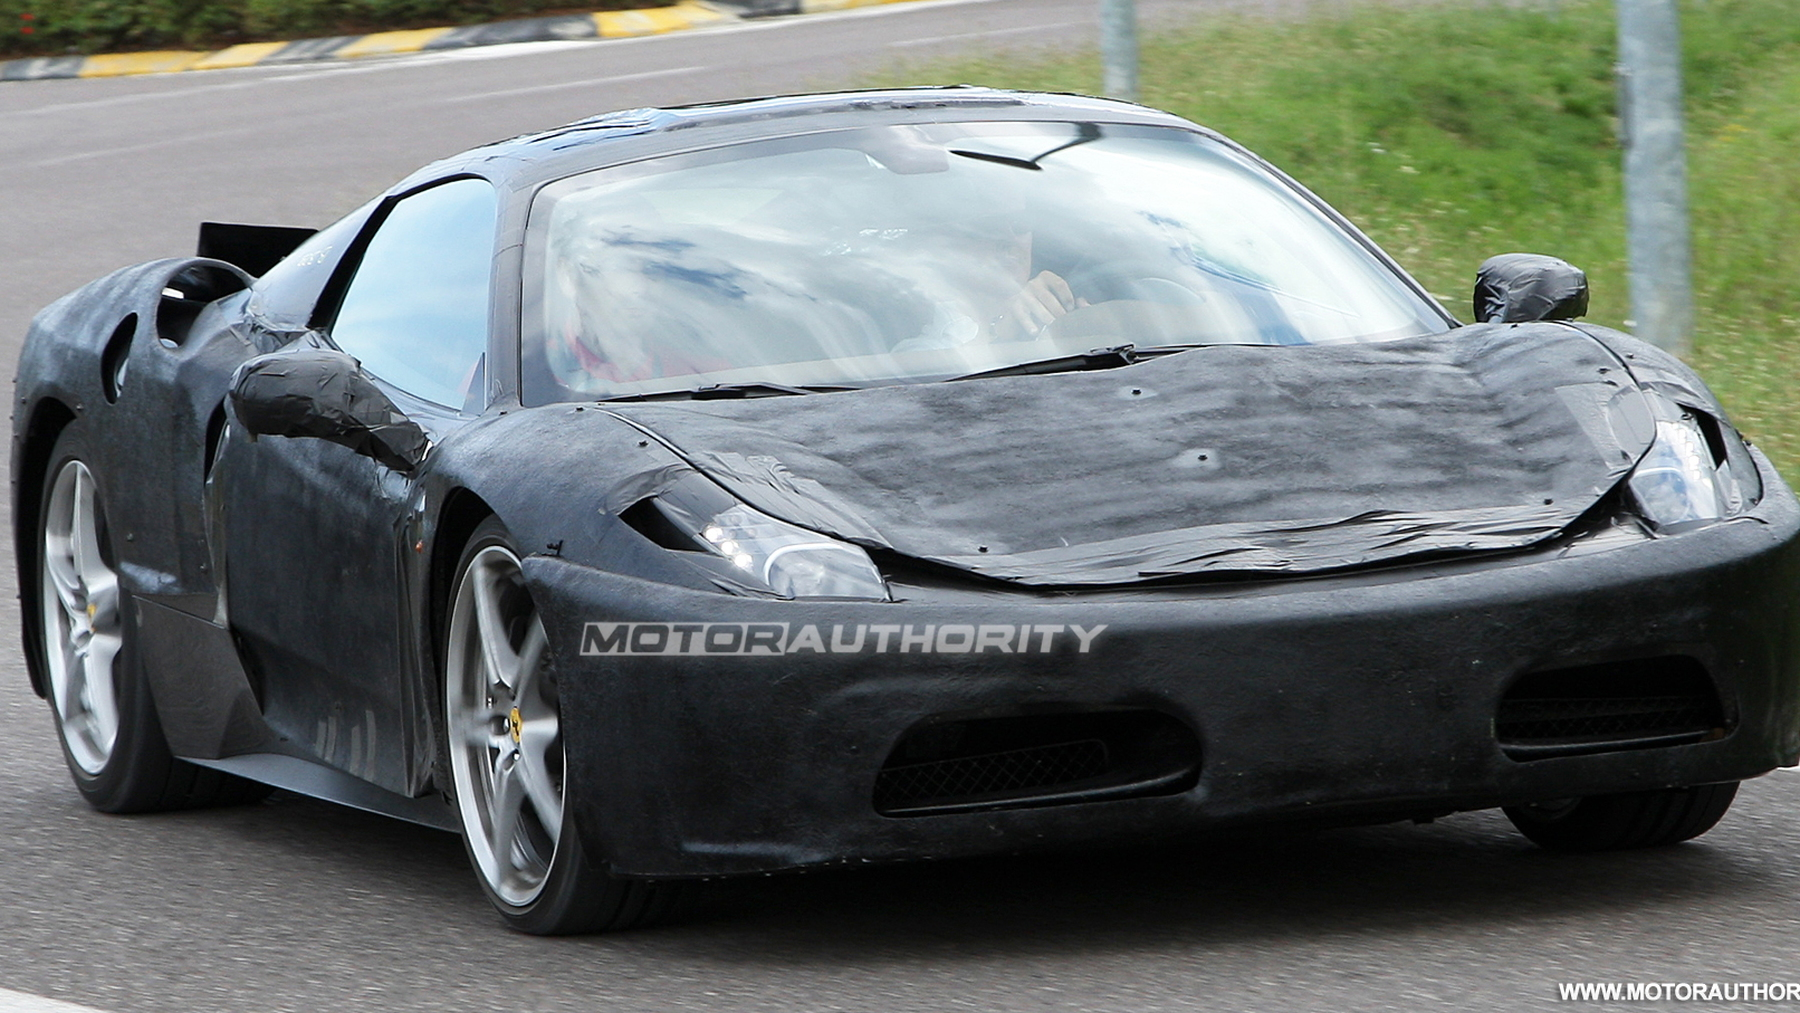 2011 ferrari f450 prototype spy shots july 002